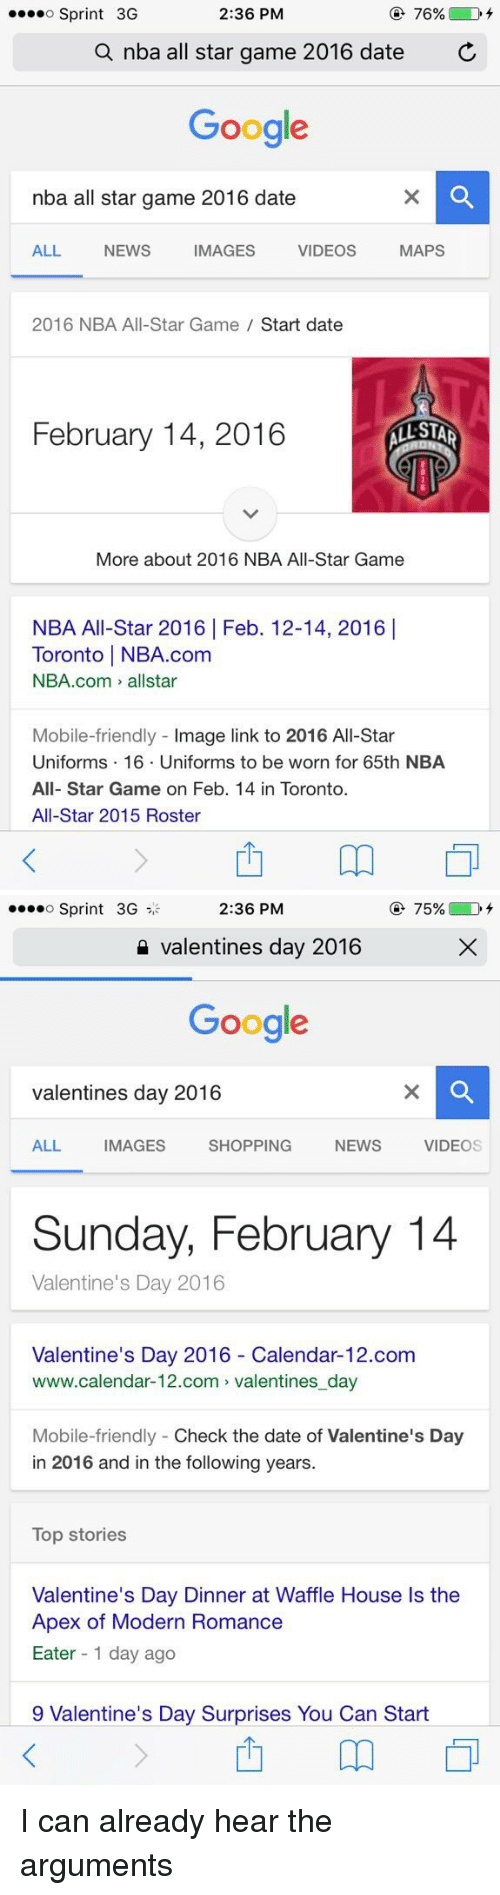 2016 Calendar: 2:36 PM  76%  D  o Sprint 3G  a nba all star game 2016 date  C  Google  nba all star game 2016 date  MAPS  ALL NEWS IMAGES VIDEOS  2016 NBA All-Star Game  Start date  February 14, 2016  STAR  More about 2016 NBA All-Star Game  NBA All-Star 2016 Feb. 12-14, 2016 I  Toronto l NBA.com  NBA.com allstar  Mobile-friendly  mage link to 2016 All-Star  Uniforms 16. Uniforms to be worn for 65th NBA  All-Star Game on Feb. 14 in Toronto.  All-Star 2015 Roster   75%  D  o Sprint 3G  2:36 PM  Valentines day 2016  Google  valentines day 2016  ALL IMAGES SHOPPING NEWs  VIDEO  Sunday, February 14  Valentine's Day 2016  Valentine's Day 2016 Calendar-12.com  www.calendar-12.com valentines day  Mobile-friendly Check the date of Valentine's Day  in 2016 and in the following years.  Top stories  Valentine's Day Dinner at Waffle House ls the  Apex of Modern Romance  Eater 1 day ago  9 Valentine's Day Surprises You Can Start I can already hear the arguments